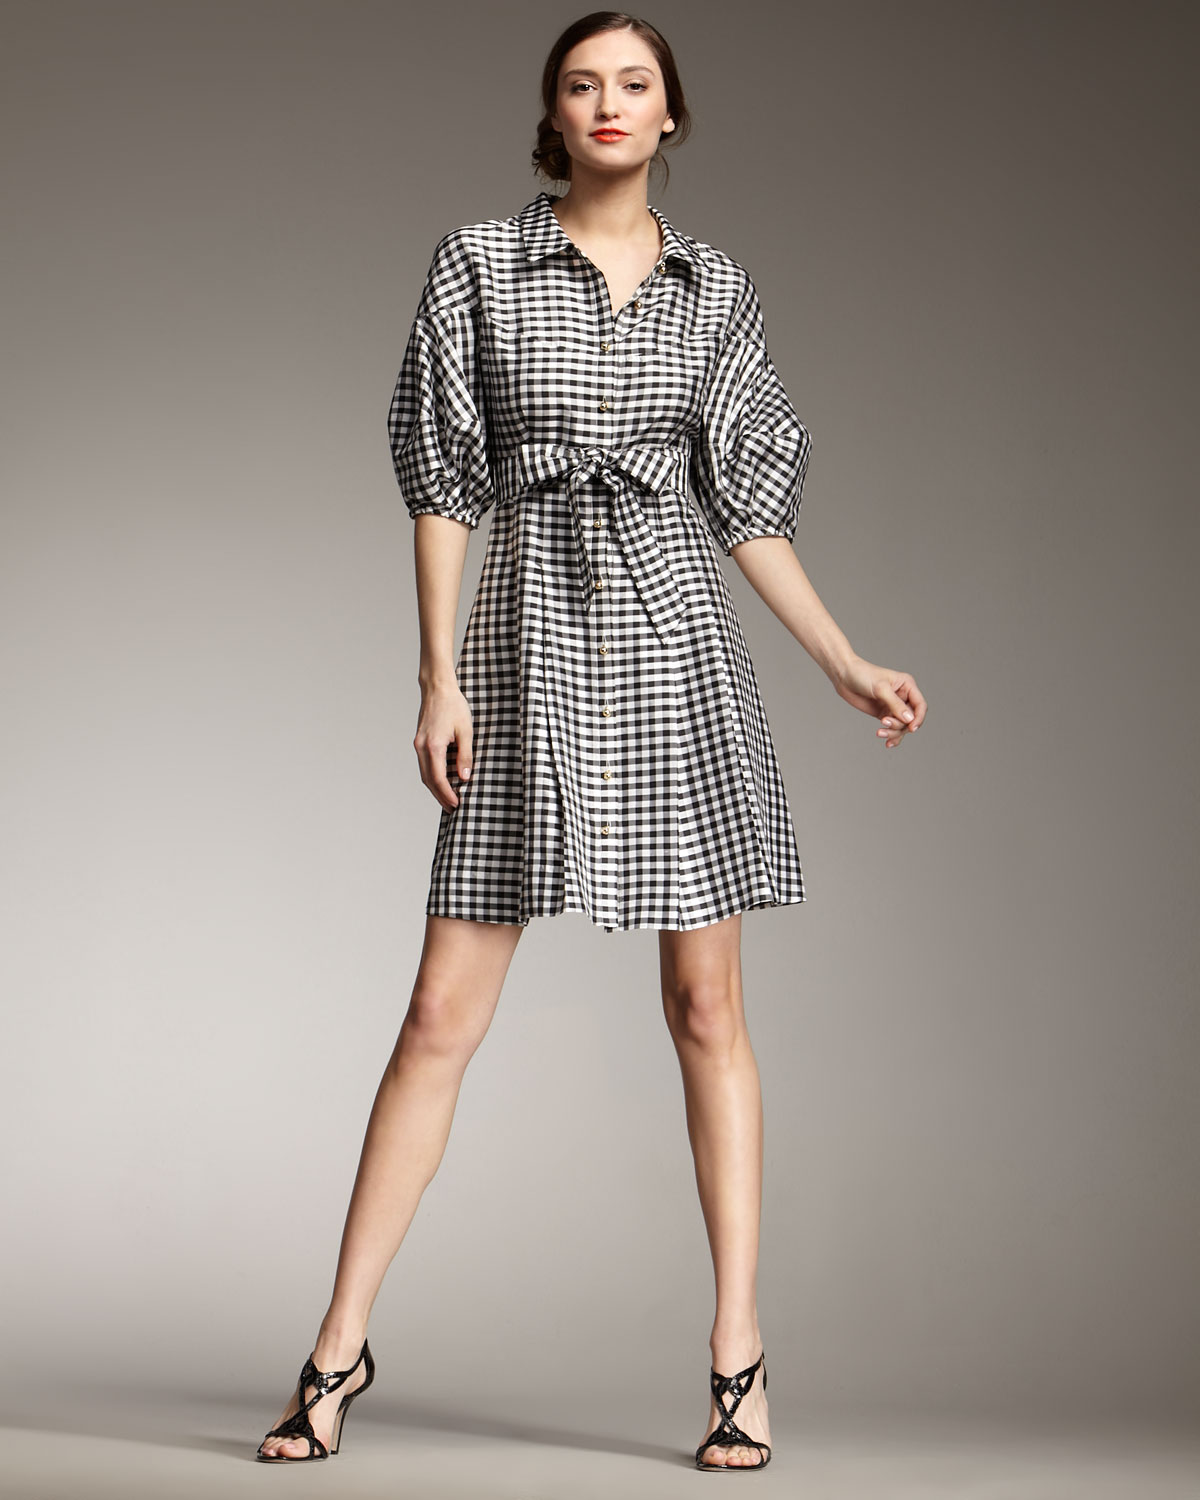 Kate spade new york tracy gingham shirtdress in gray lyst for New york and company dress shirts